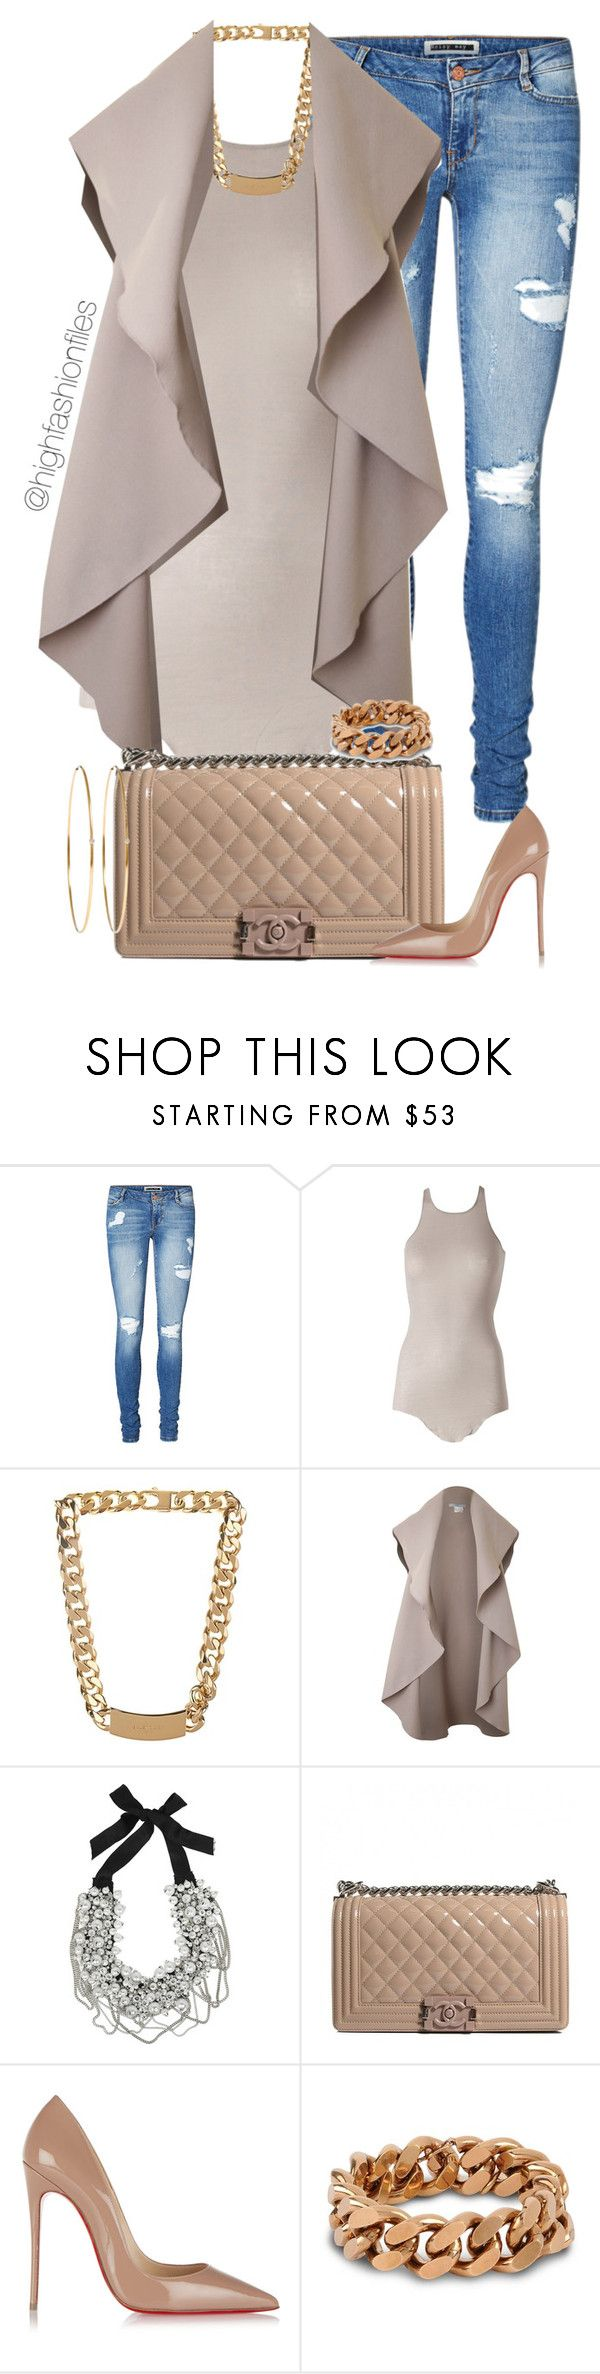 """Casual Conversation"" by highfashionfiles ❤ liked on Polyvore featuring Vero Moda, Rick Owens, Balenciaga, Oscar de la Renta, Chanel, Christian Louboutin, STELLA McCARTNEY and Jennifer Meyer Jewelry"